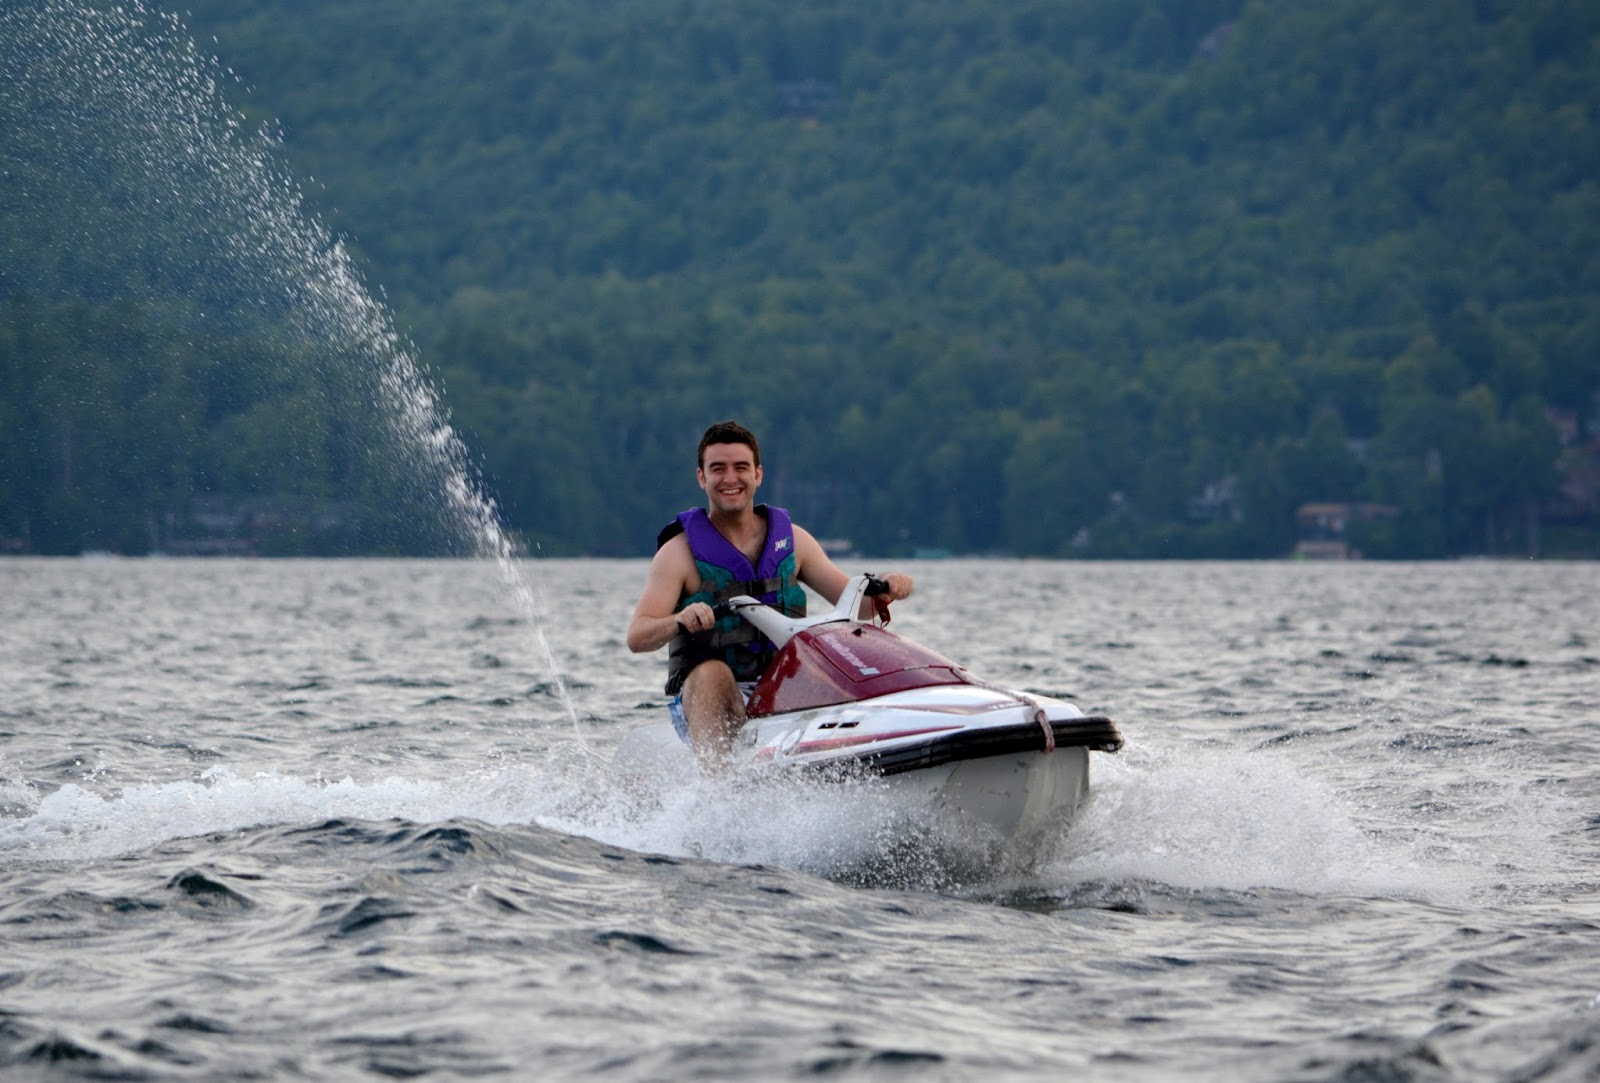 cozy birdhouse | jet skis on lake george